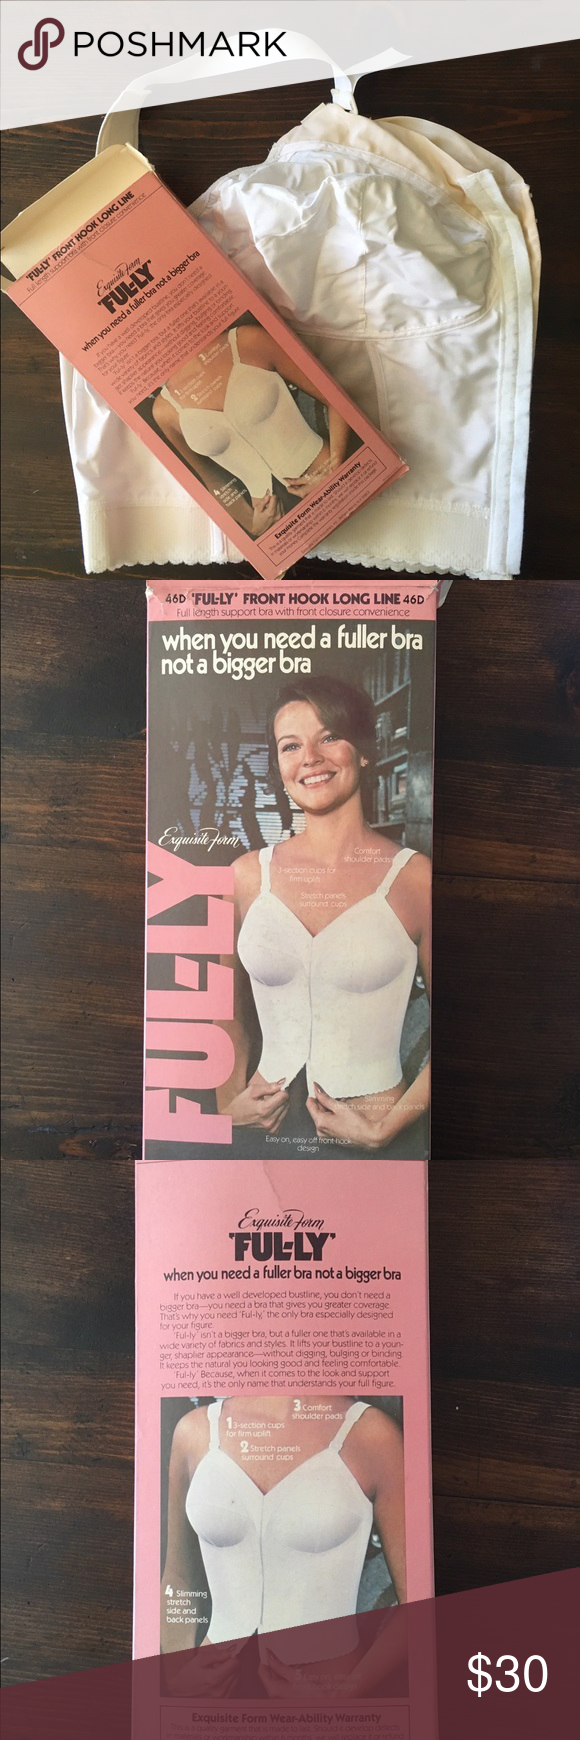 8cd9dd2f716 VTG 60 s Exquisite Form front hook longline Bra Vintage 60 s Exquisite Form  Ful-ly frint hook longline Bra New in box.   Size 46D  color white.